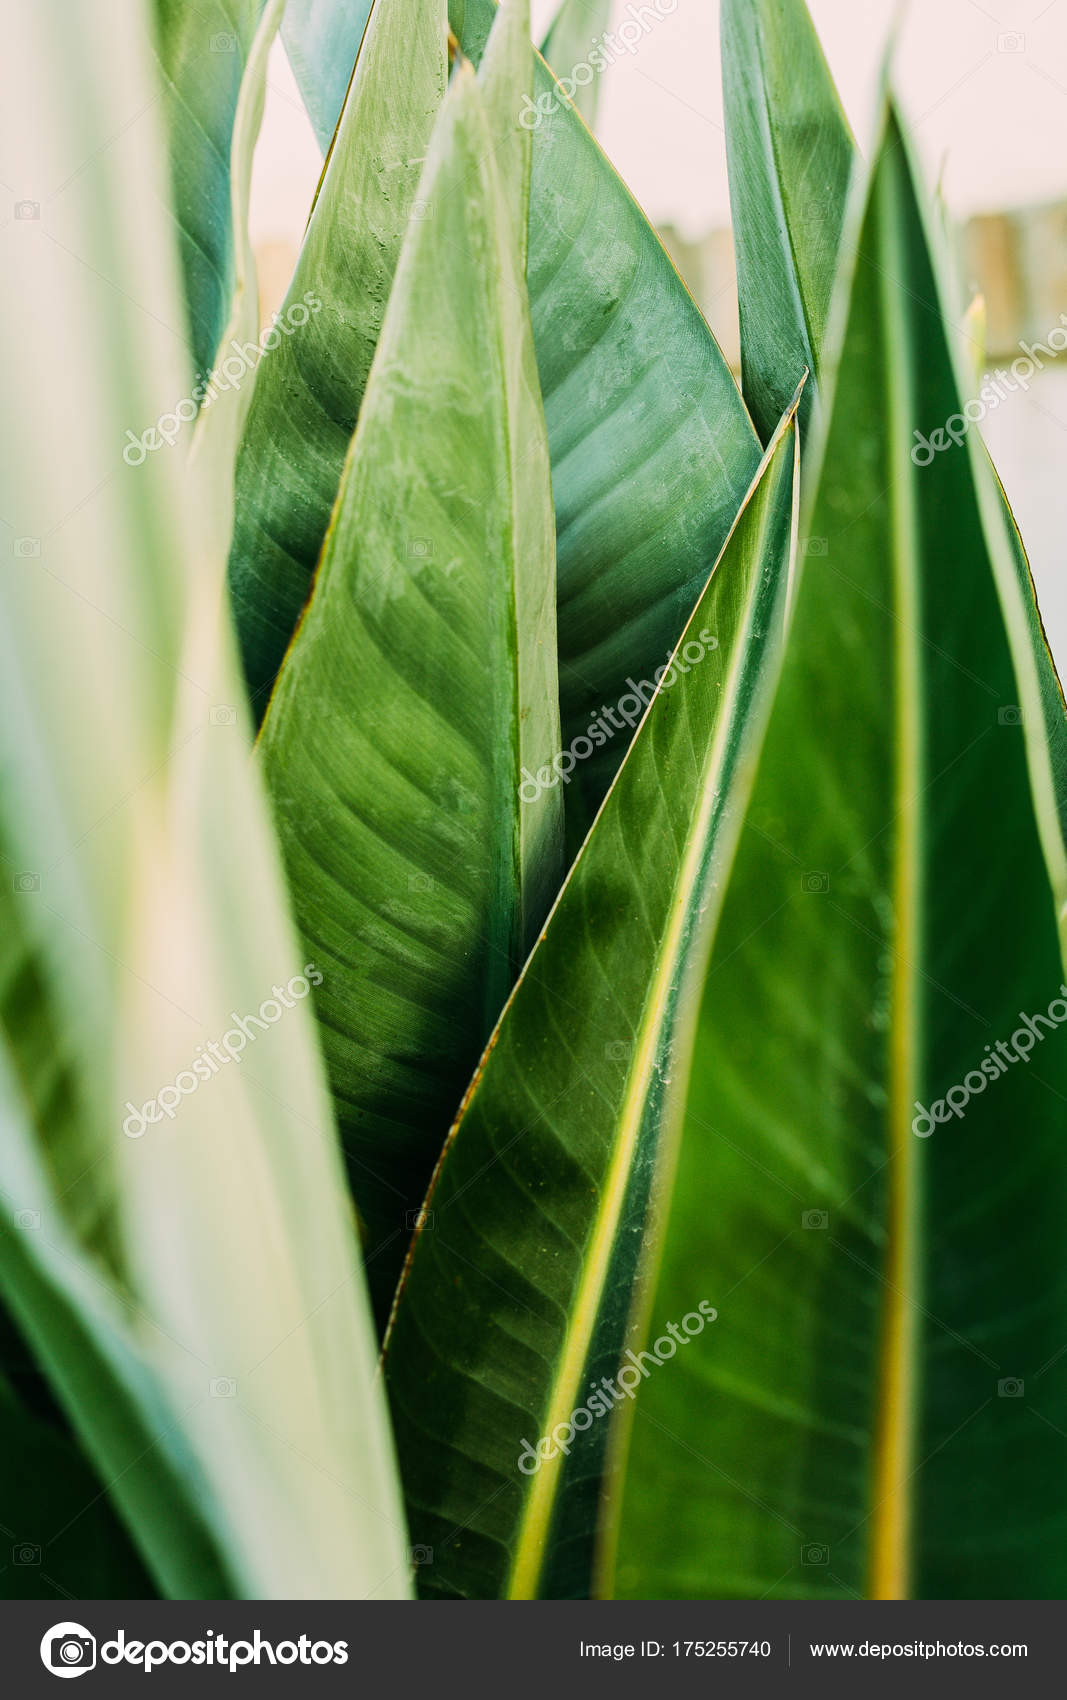 Áˆ Tropical Leaves Wallpaper Stock Photography Royalty Free Tropical Leaves Photos Download On Depositphotos Download all photos and use them even for commercial projects. https depositphotos com 175255740 stock photo close shot green tropical leaves html